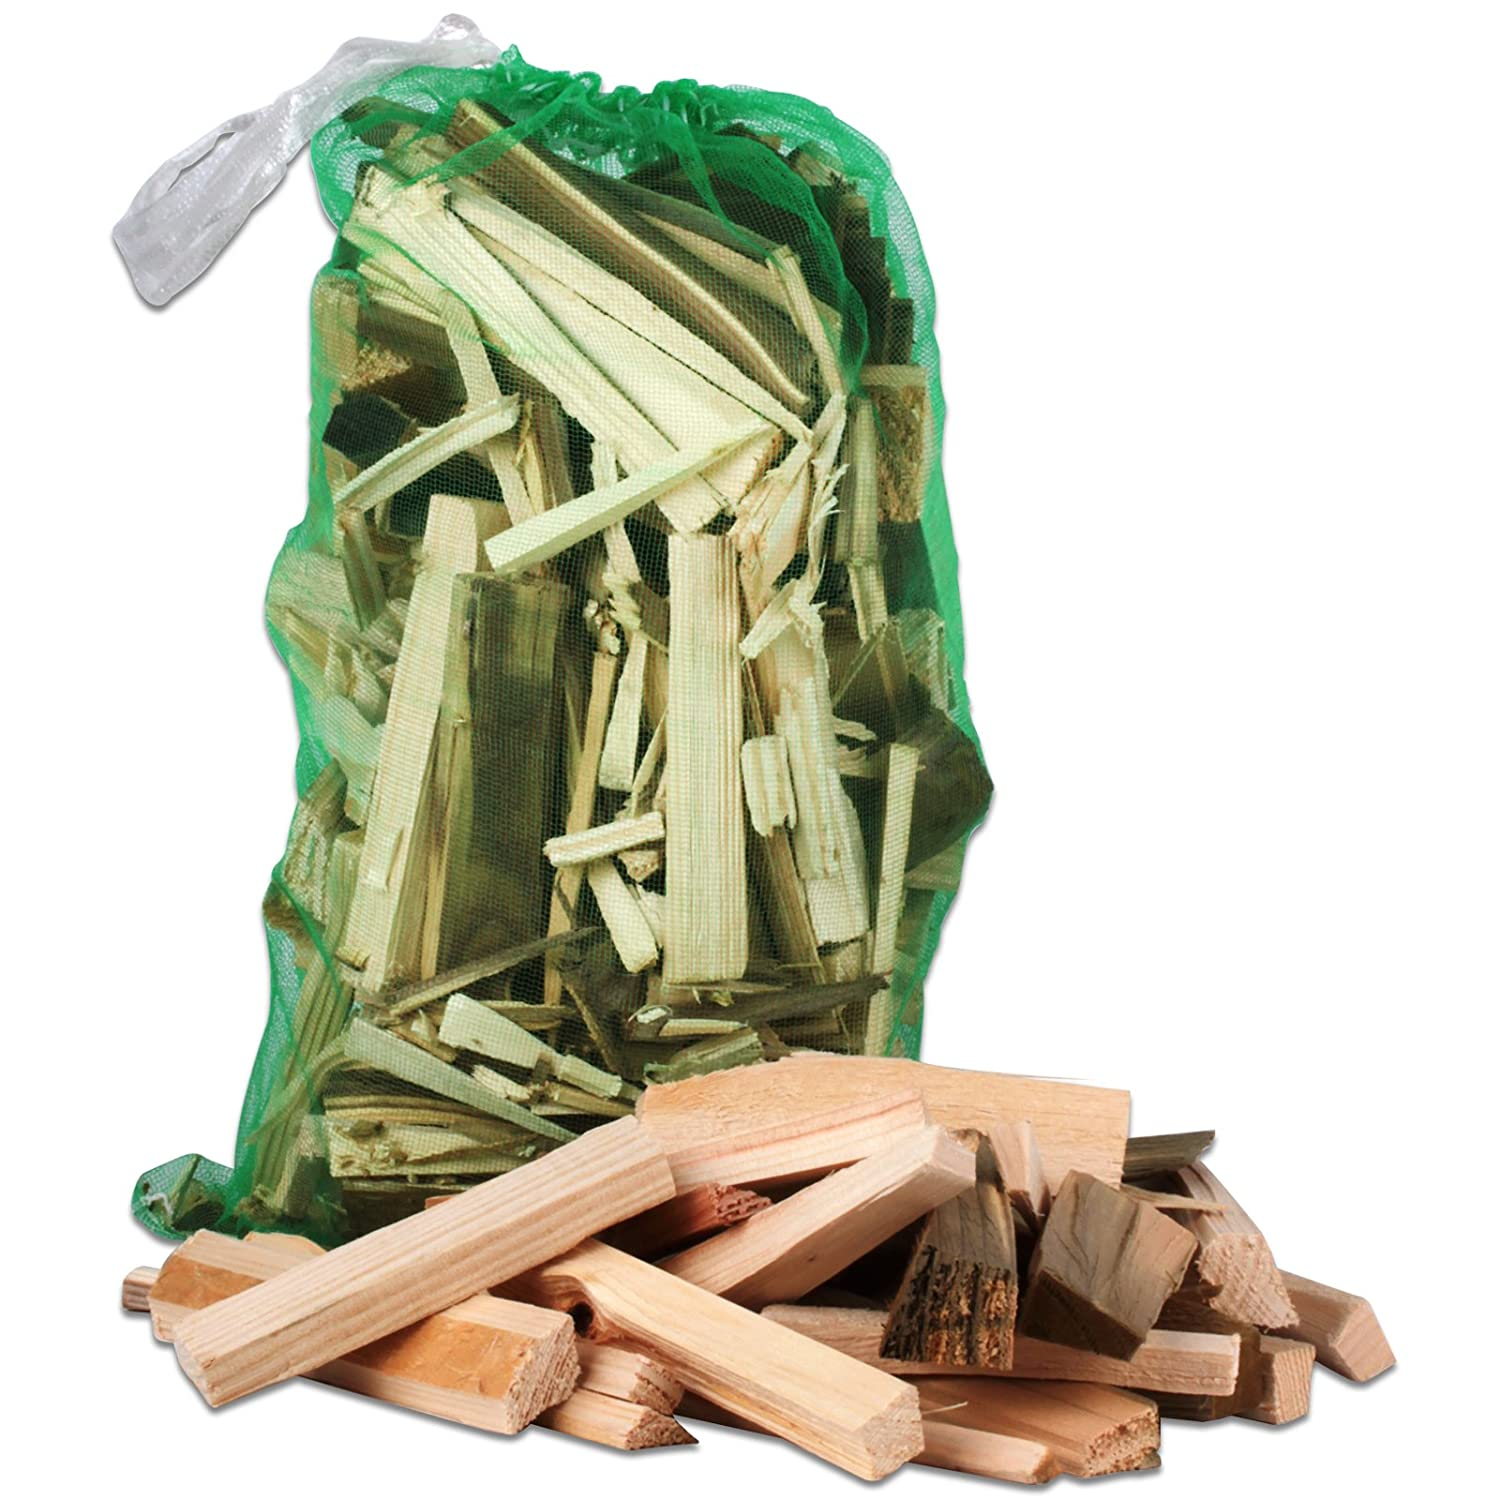 12KG Tigerbox® High Quality Wooden Kindling. Ideal for Fire Starting, Open Fires, Stoves, Wood Burners, BBQ & Ovens Shop4accessories